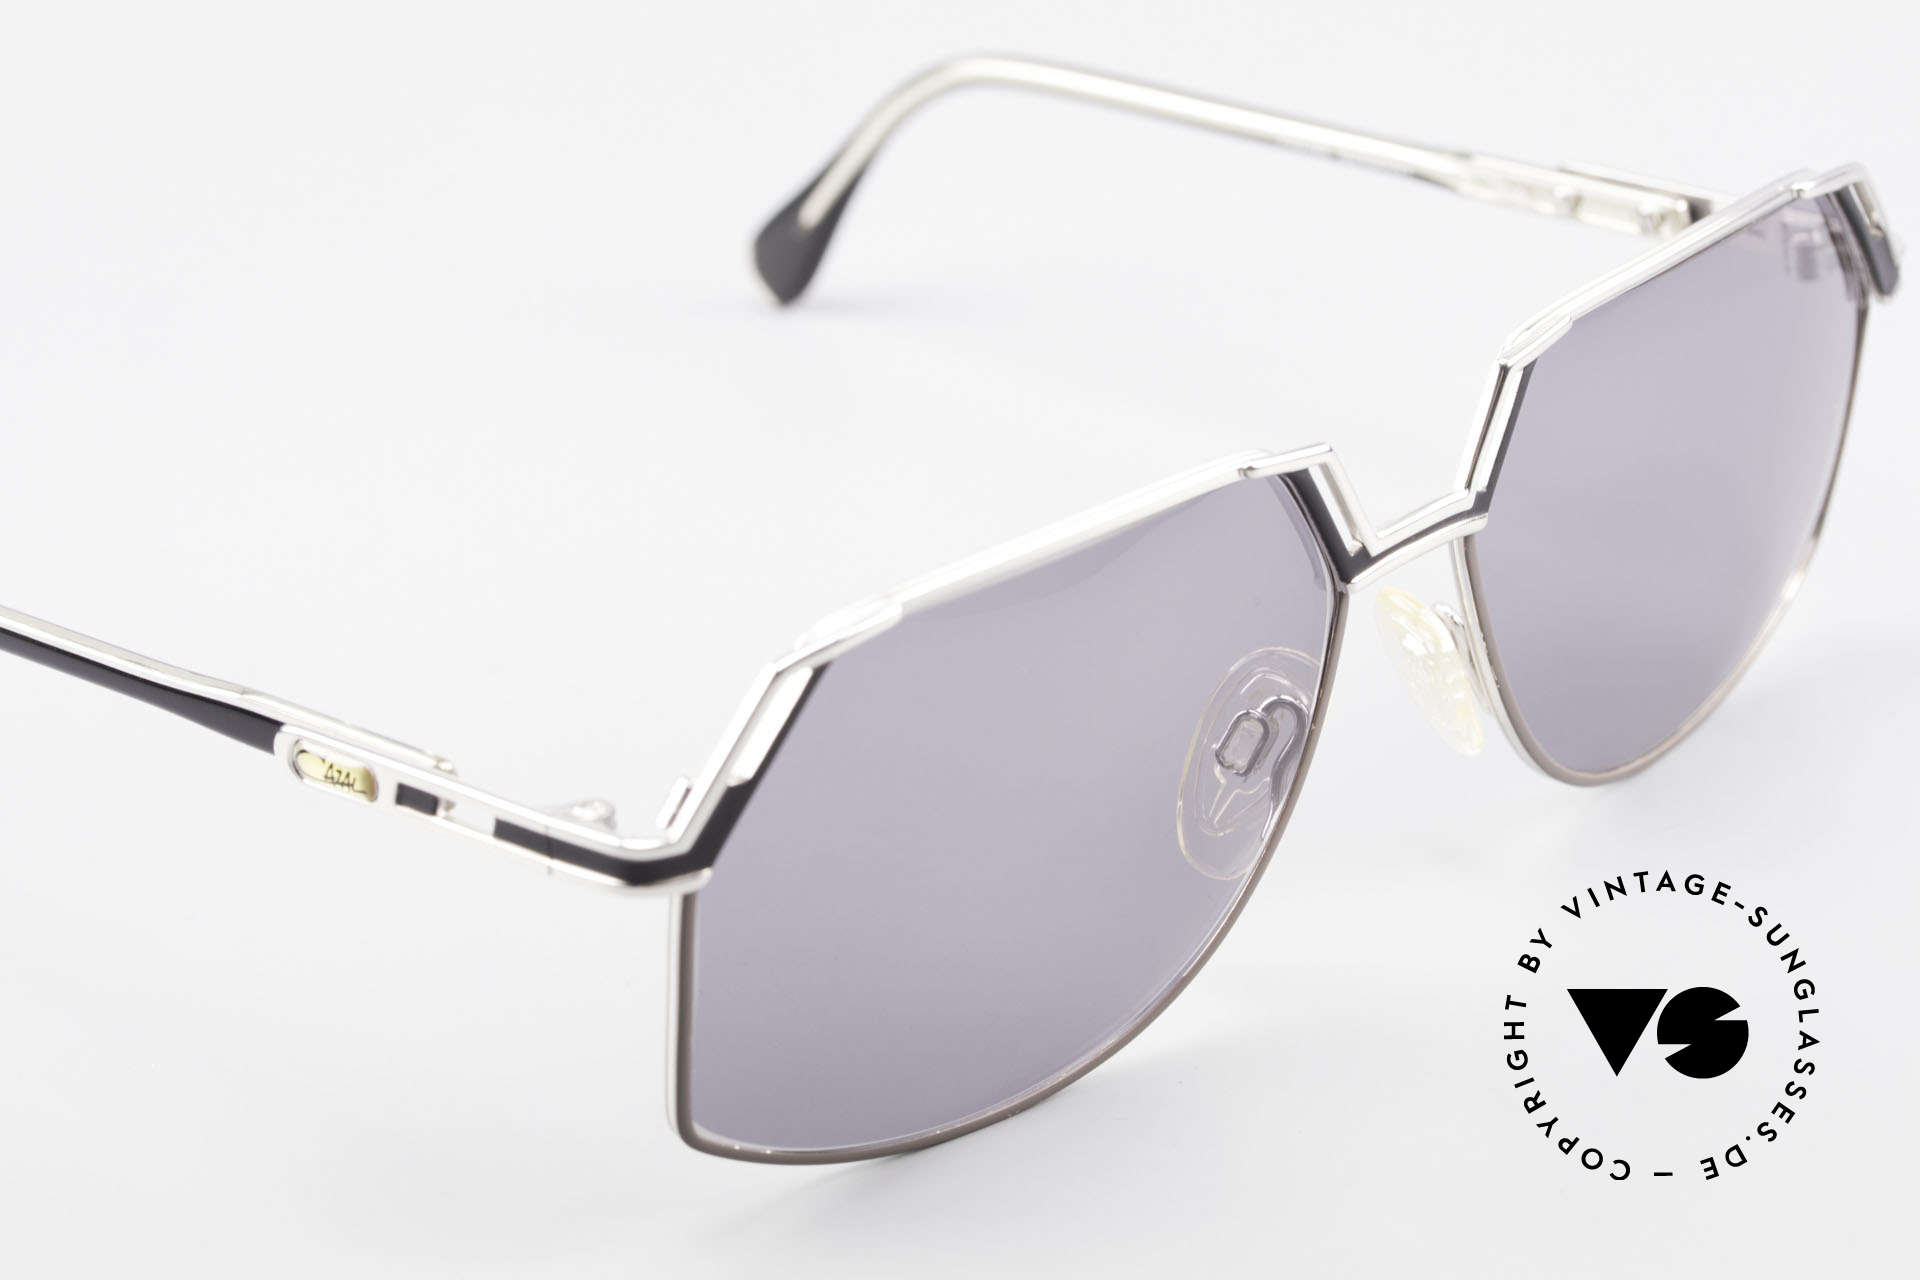 Cazal 738 True Vintage Sunglasses, the frame is made for lenses of any kind (optical / sun), Made for Men